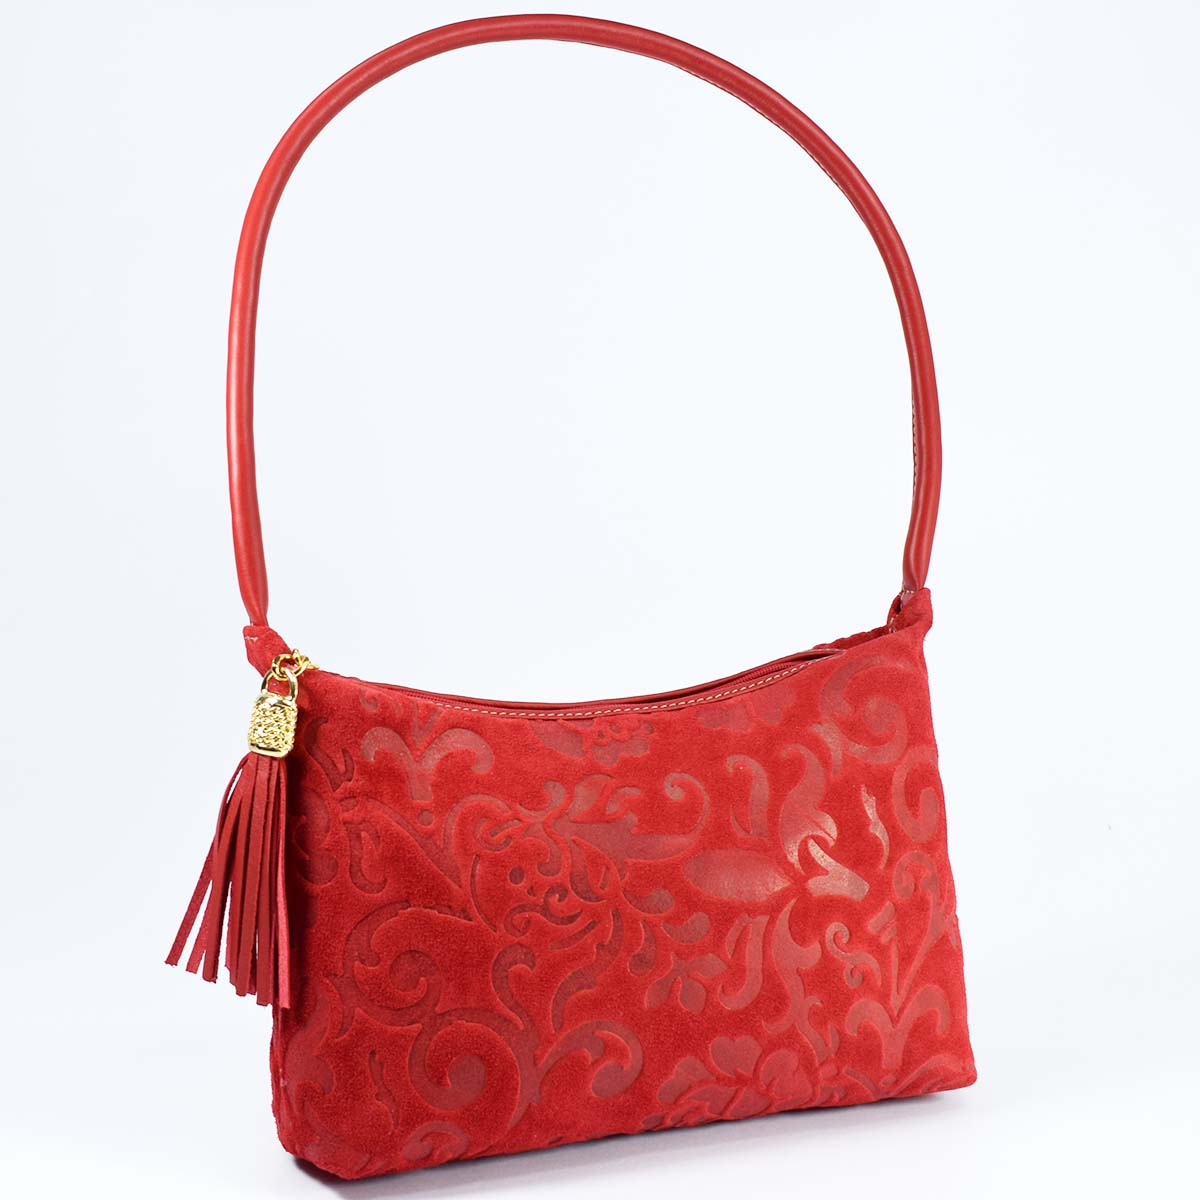 11721 shoulder bag medium by Bottega Fiorentina